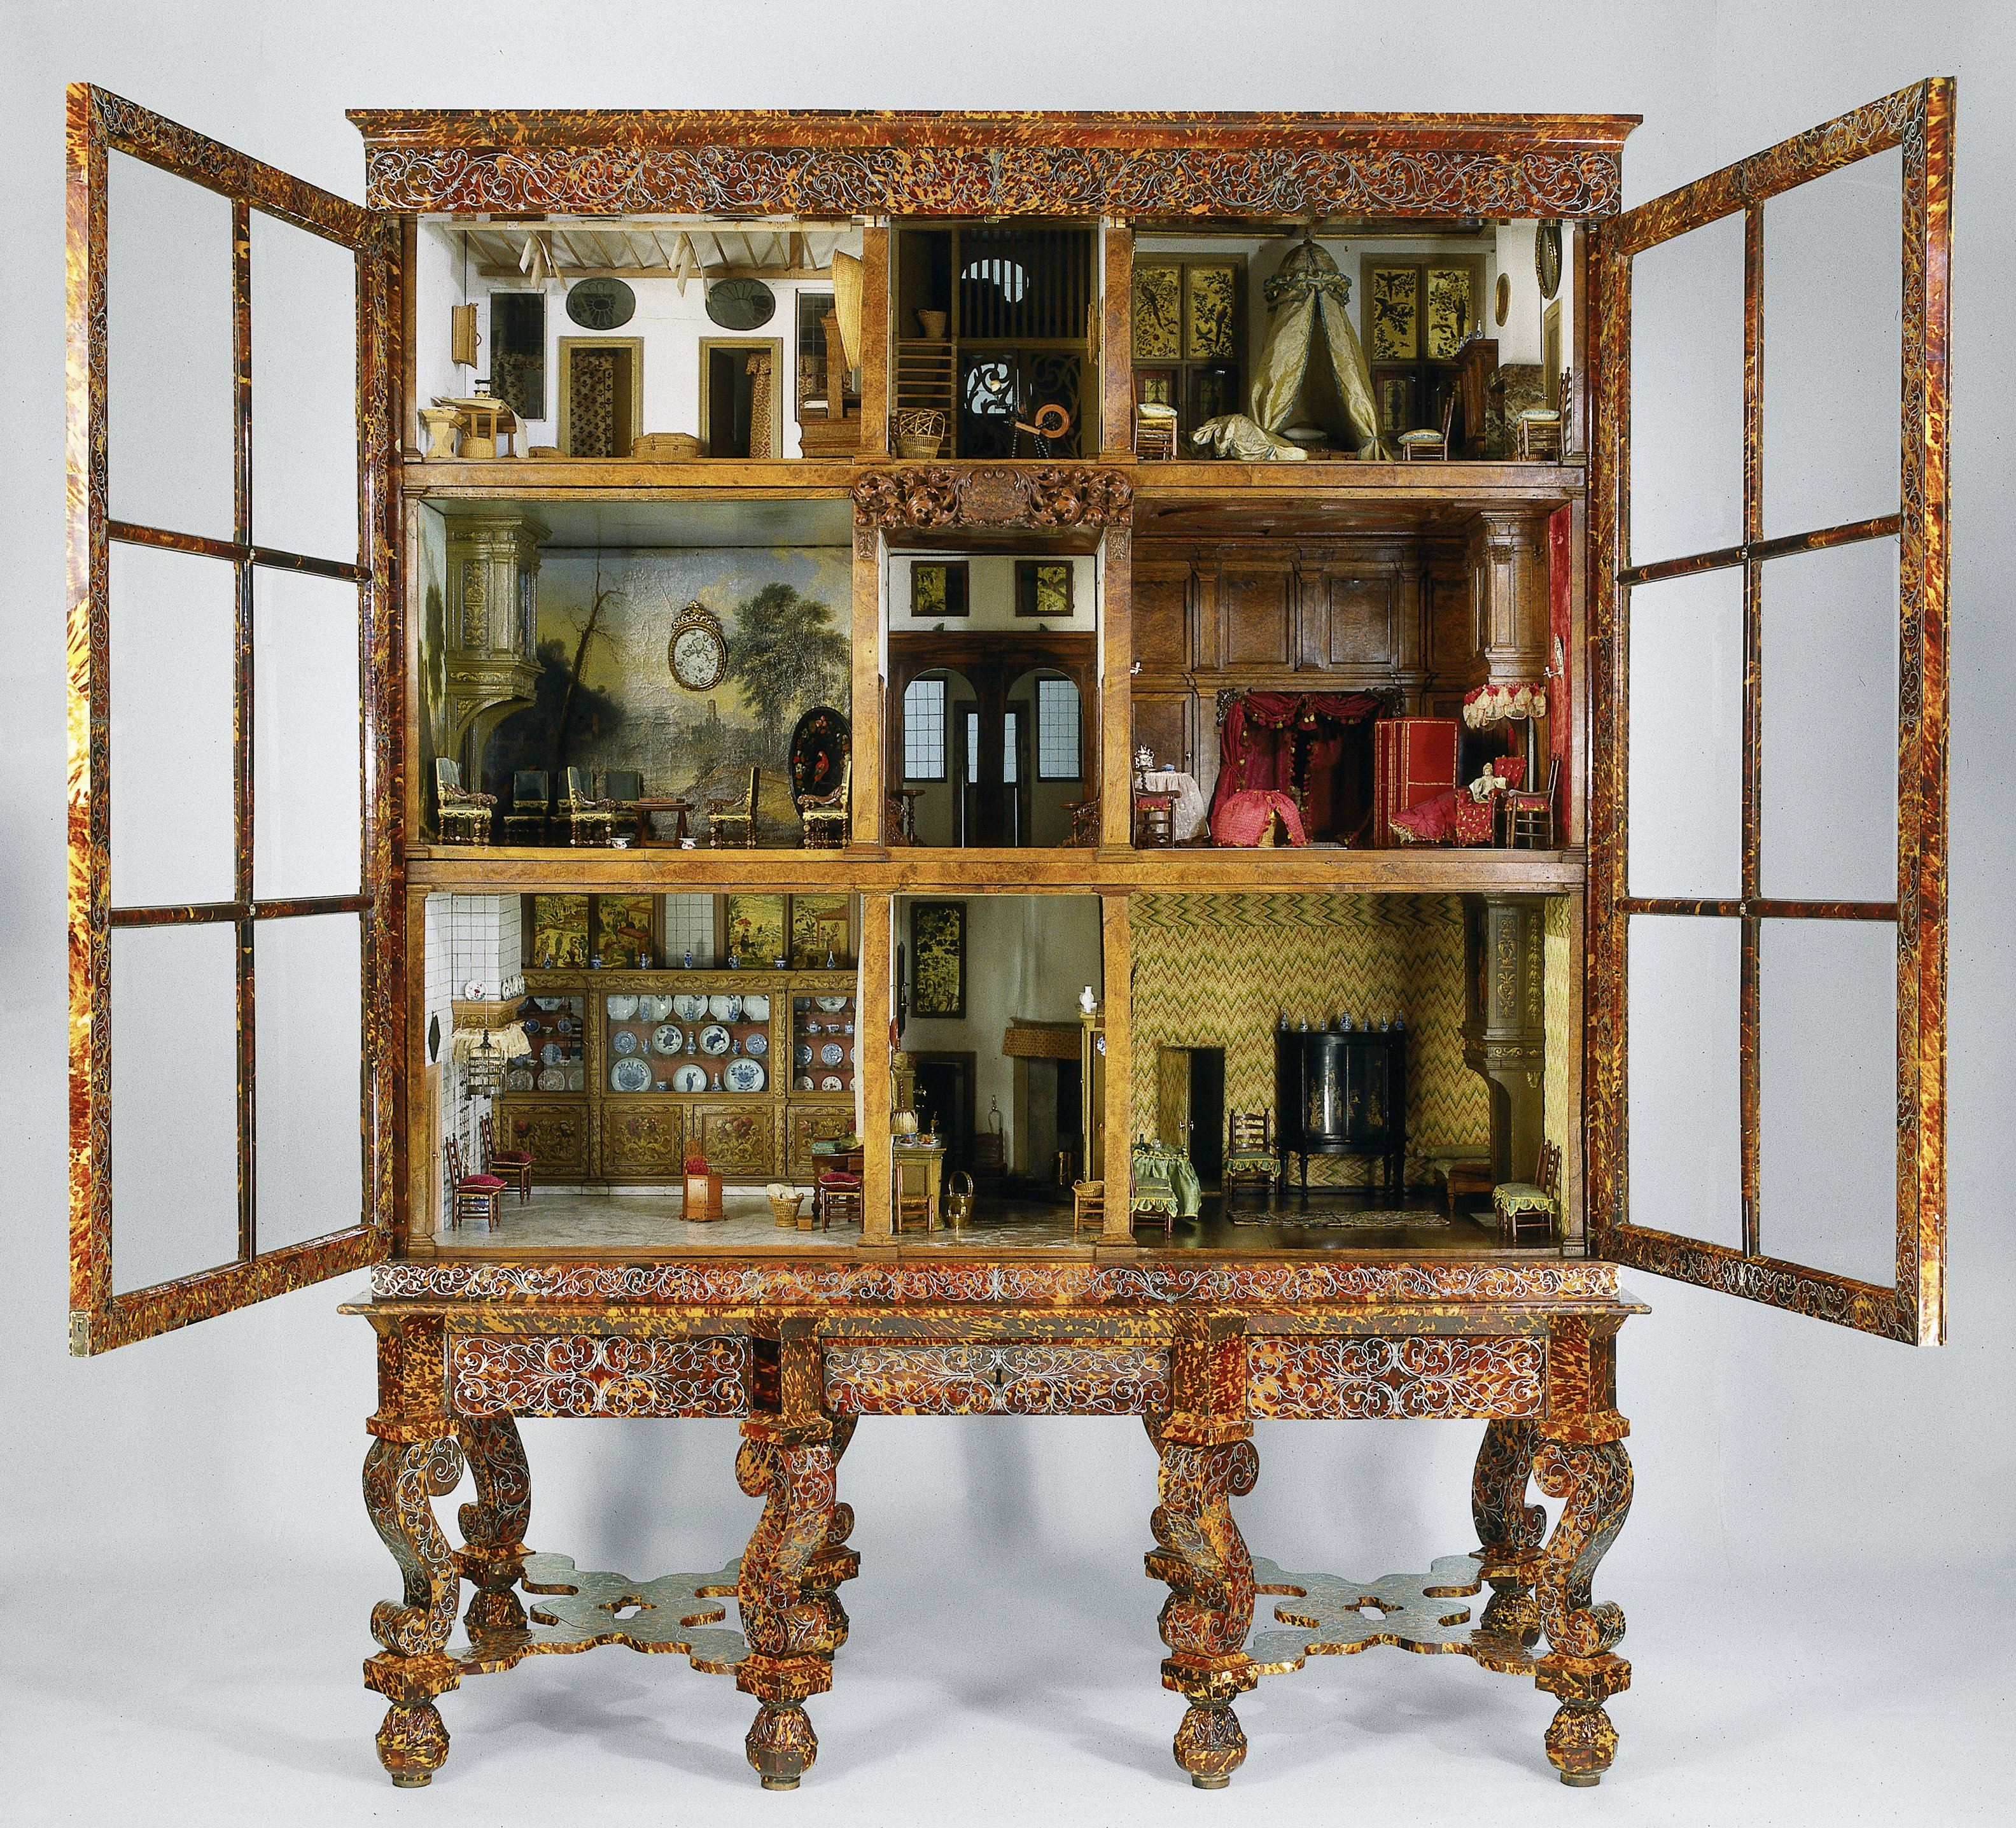 H En M Home Amsterdam Hidden Women Of History Petronella Oortman And Her Giant Dolls House